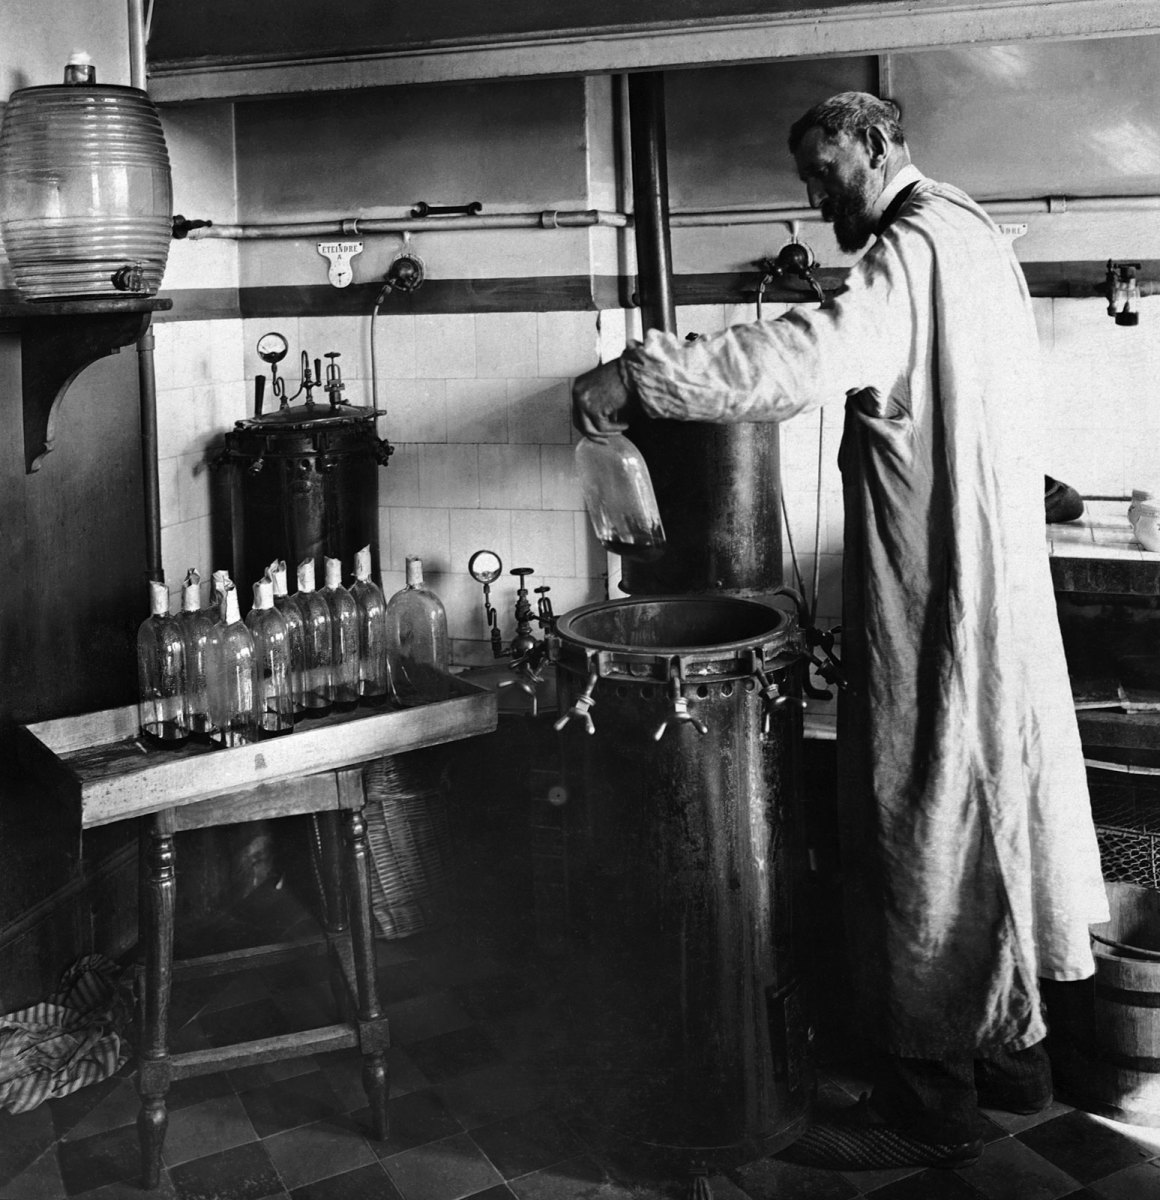 Louis Pasteur performing an experiment in his lab. Credit: Wikimedia Commons